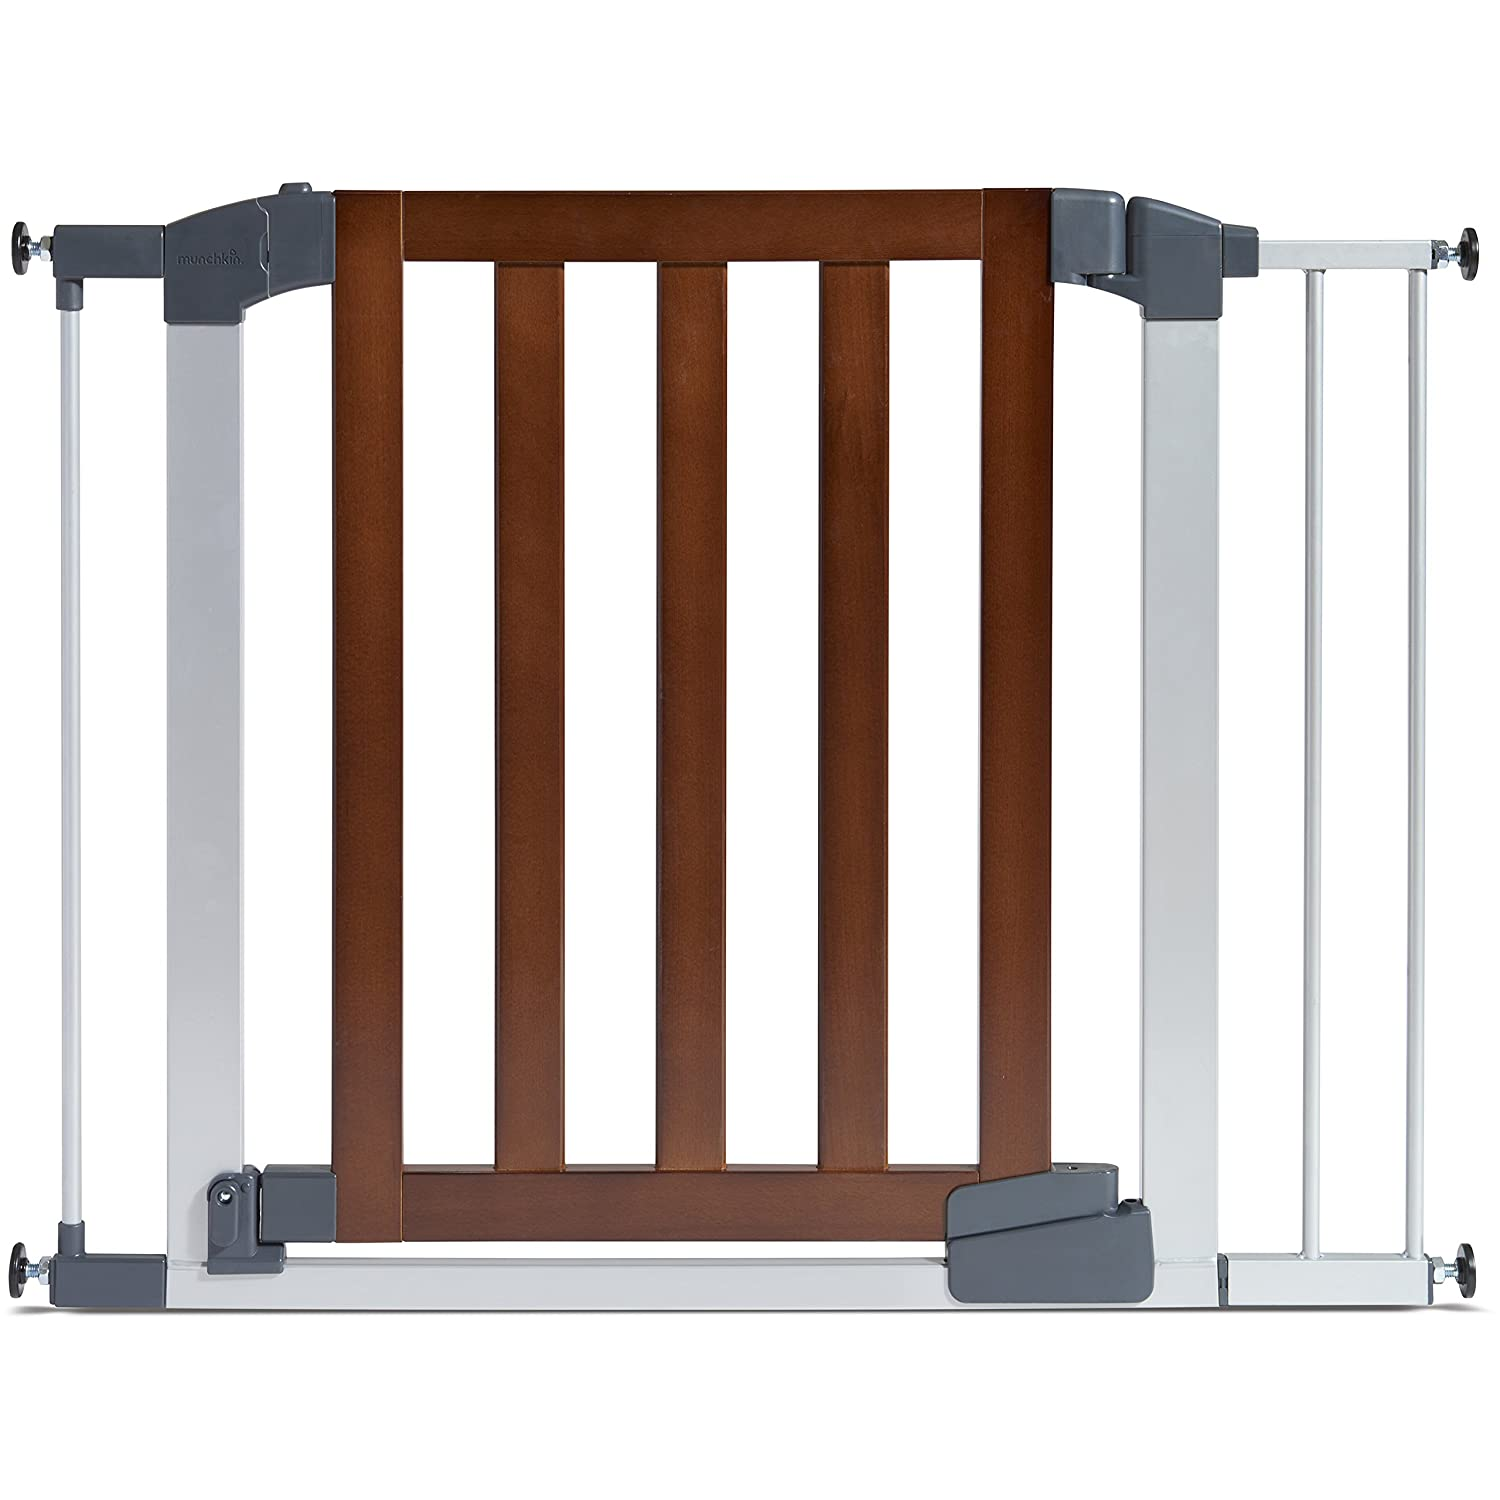 Munchkin Auto Close Modern Baby Gate, Dark Wood/Silver Metal, Model MK0094-011 46764